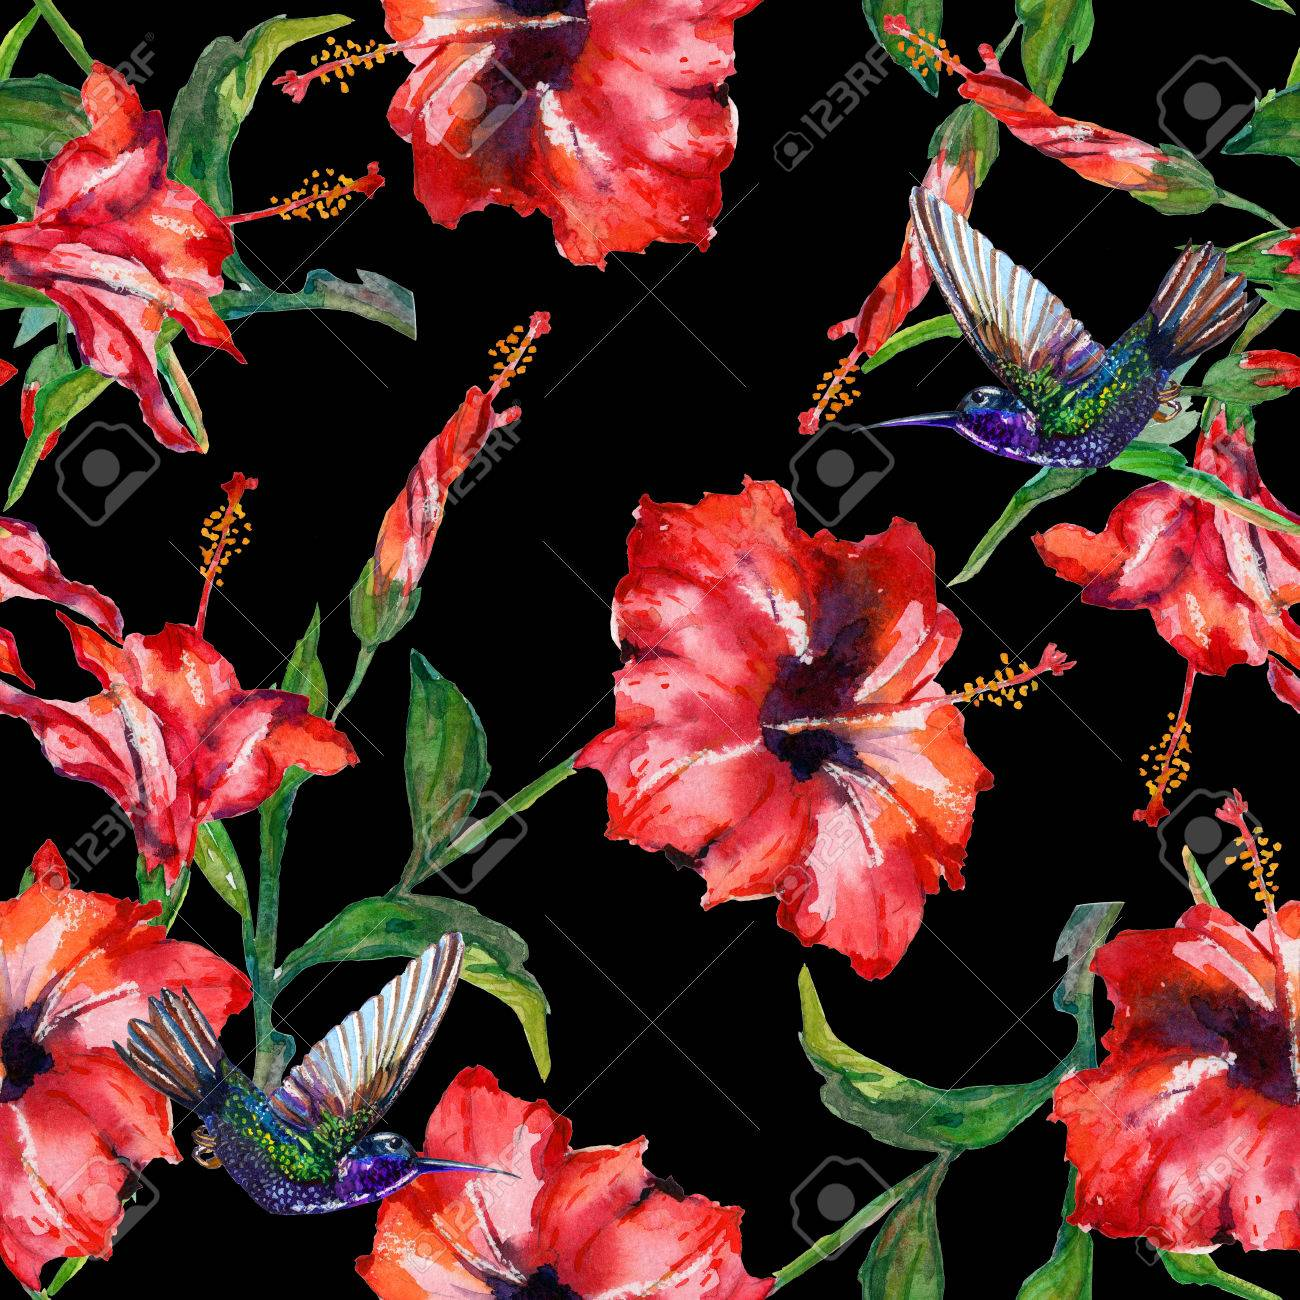 Red tropical hibiscus flowers and hovering hummingbirds seamless red tropical hibiscus flowers and hovering hummingbirds seamless floral pattern hand painted watercolor izmirmasajfo